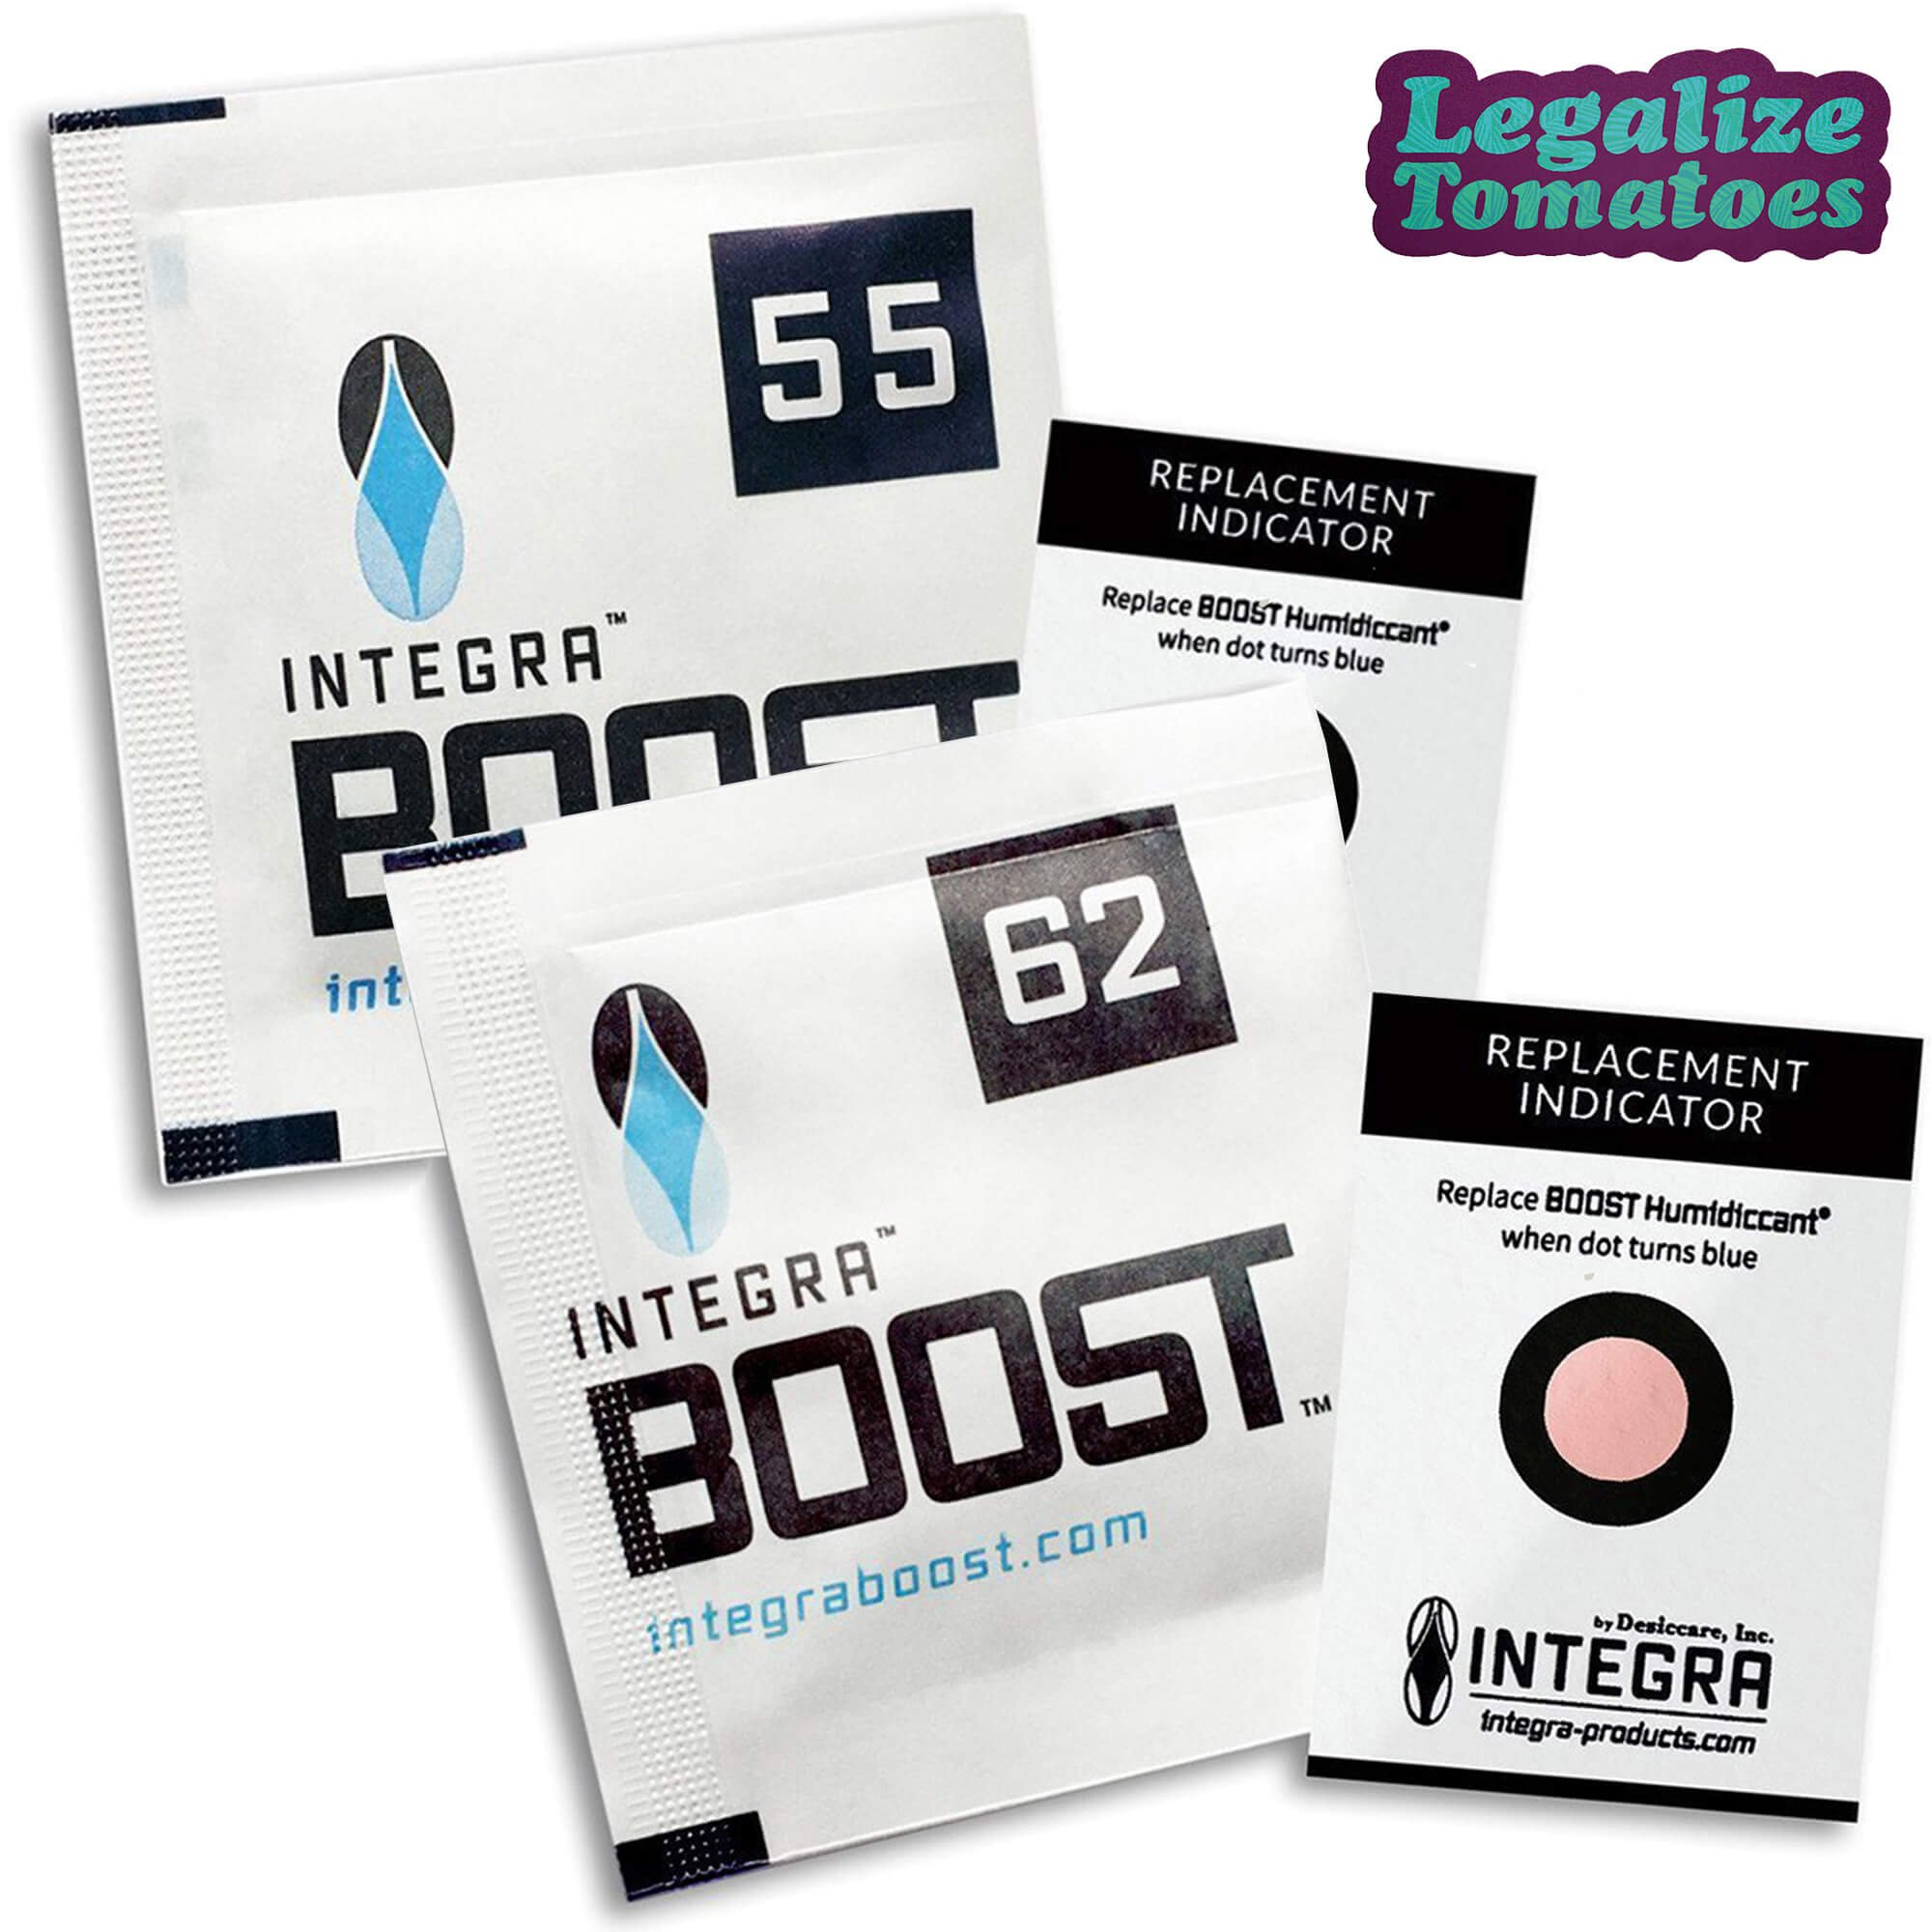 Integra Boost 4g Gram Humidity Control Packs 62% (100 Count) - Includes Free Legalize Tomatoes Sticker by Integra